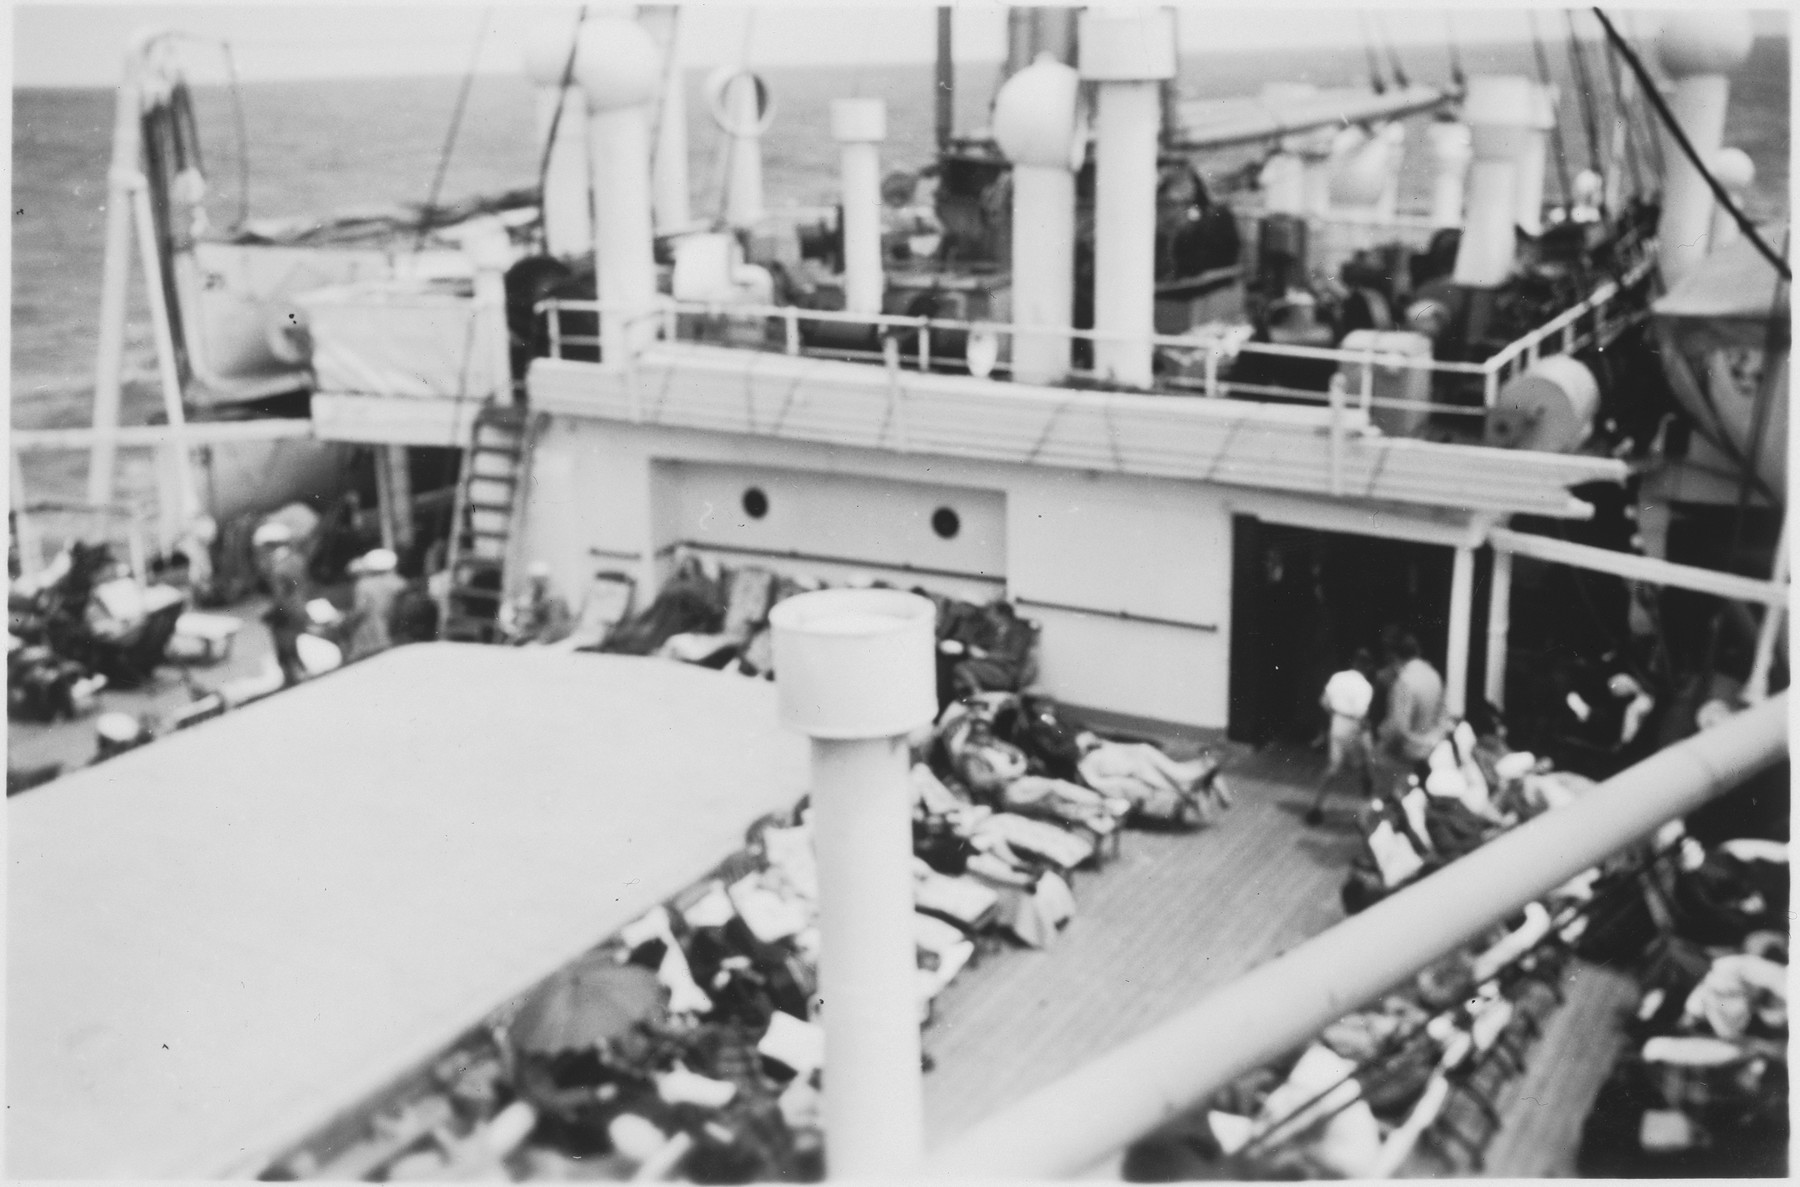 View of Jewish refugee passengers lounging on the deck of the MS St. Louis.